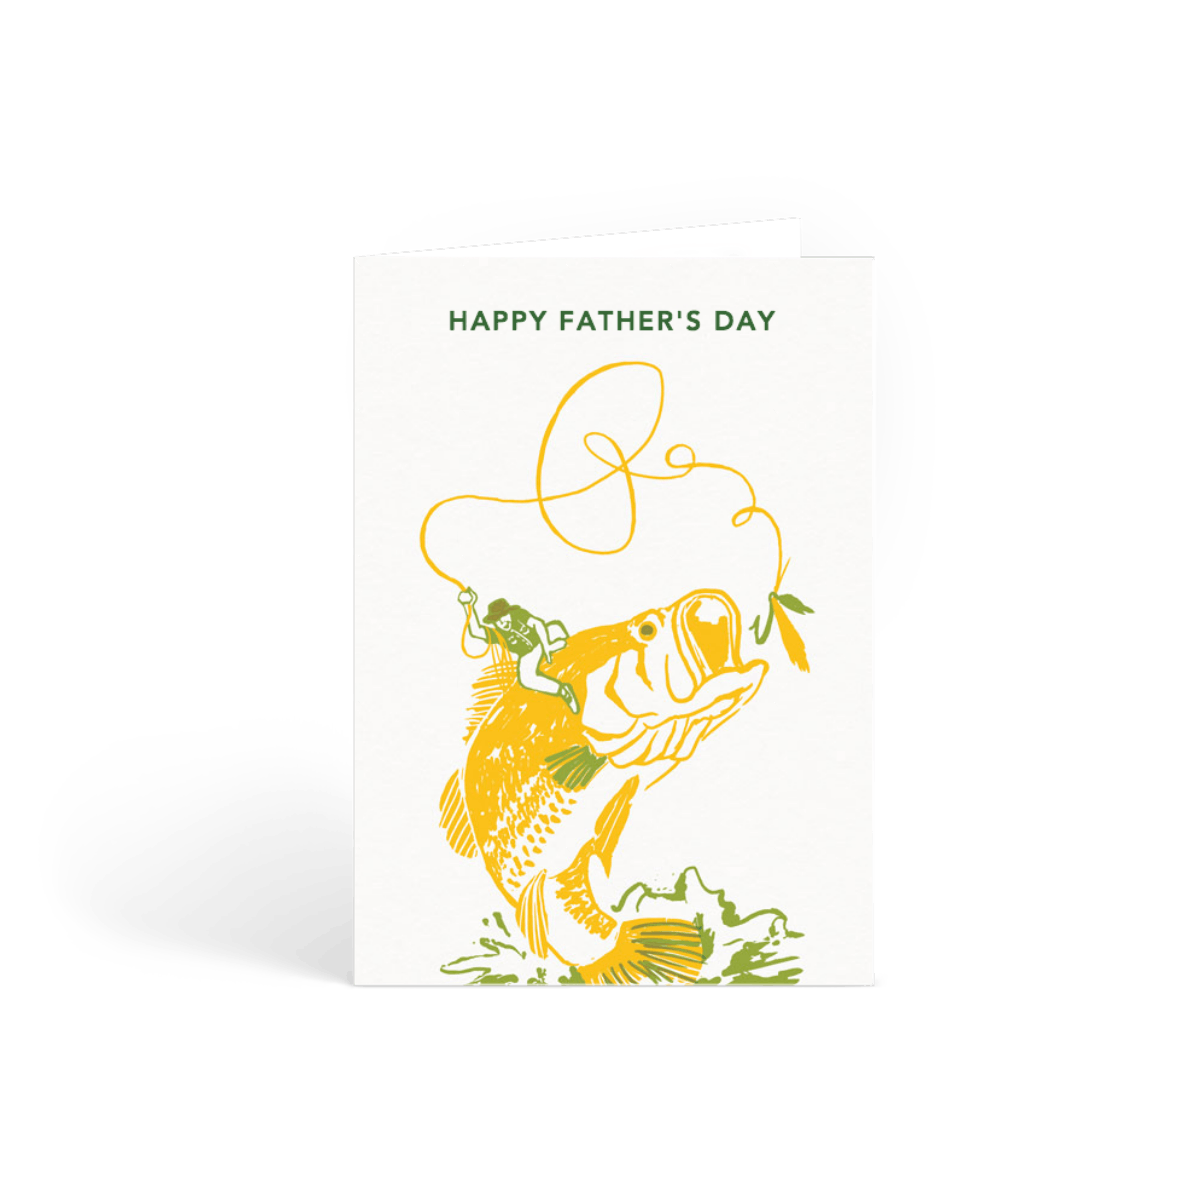 Https%3a%2f%2fwww.papier.com%2fproduct image%2f5070%2f2%2ffather s day fishing 1319 front 1458149351.png?ixlib=rb 1.1